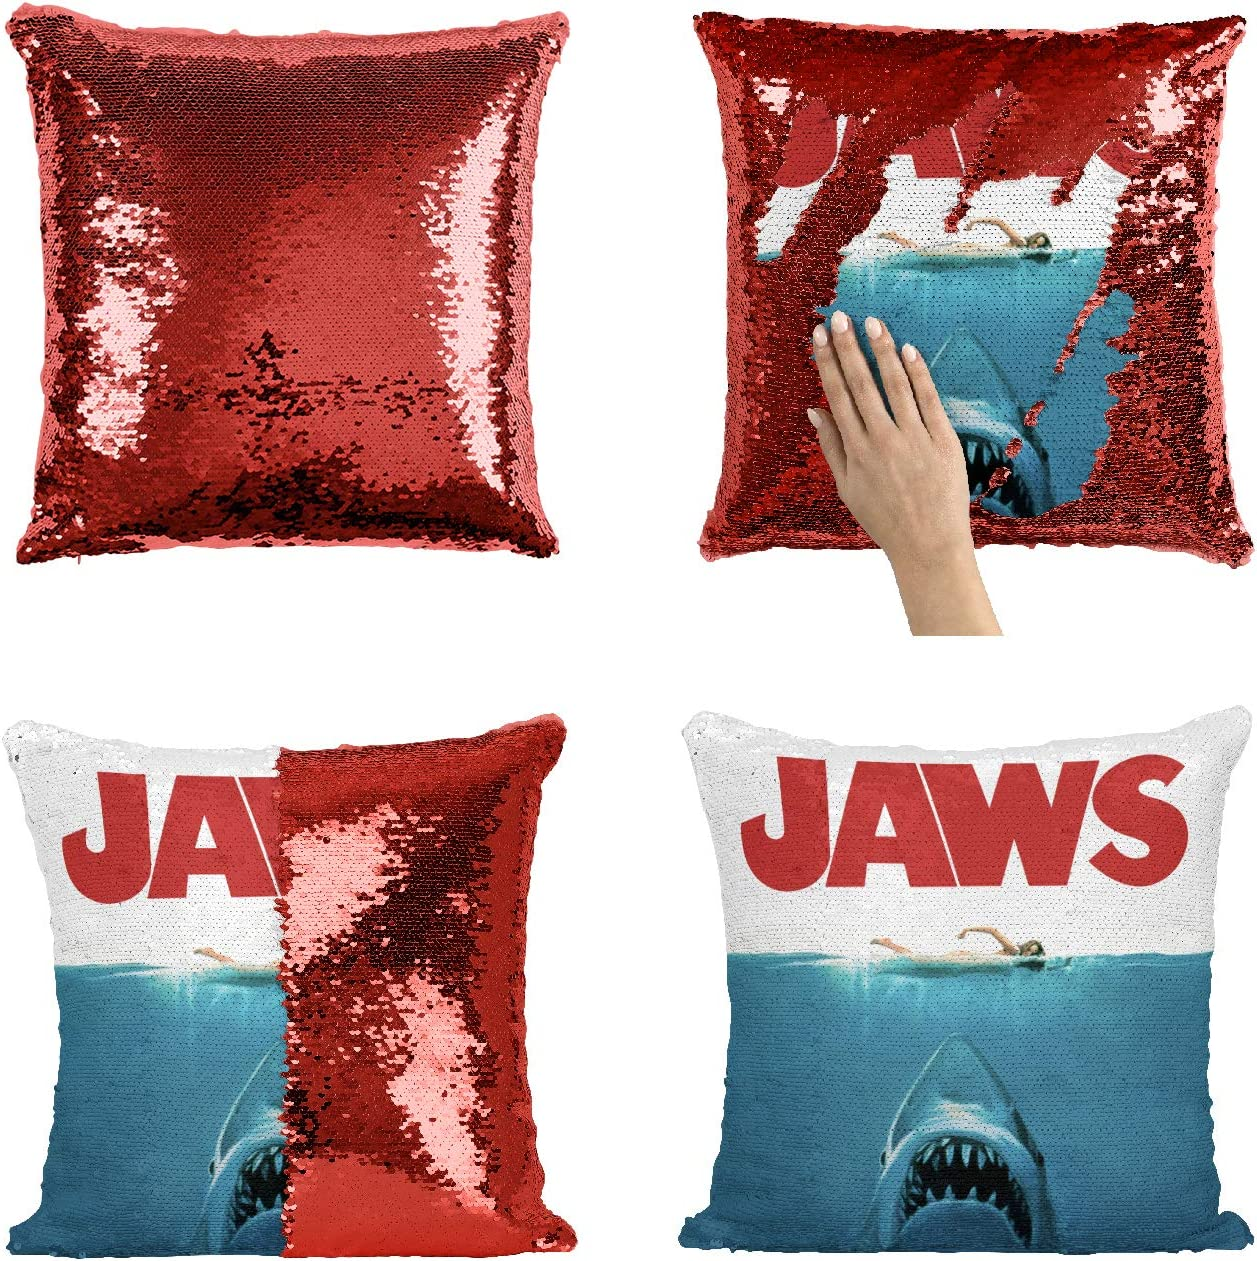 Jaws Swim Shark Sequin Pillow, Scales Reversible Funny Mermaid Pillow, Funny Meme Animation Pillow, Pillowcase Xmas, Birthday, Gift, Present (Cover + Insert)